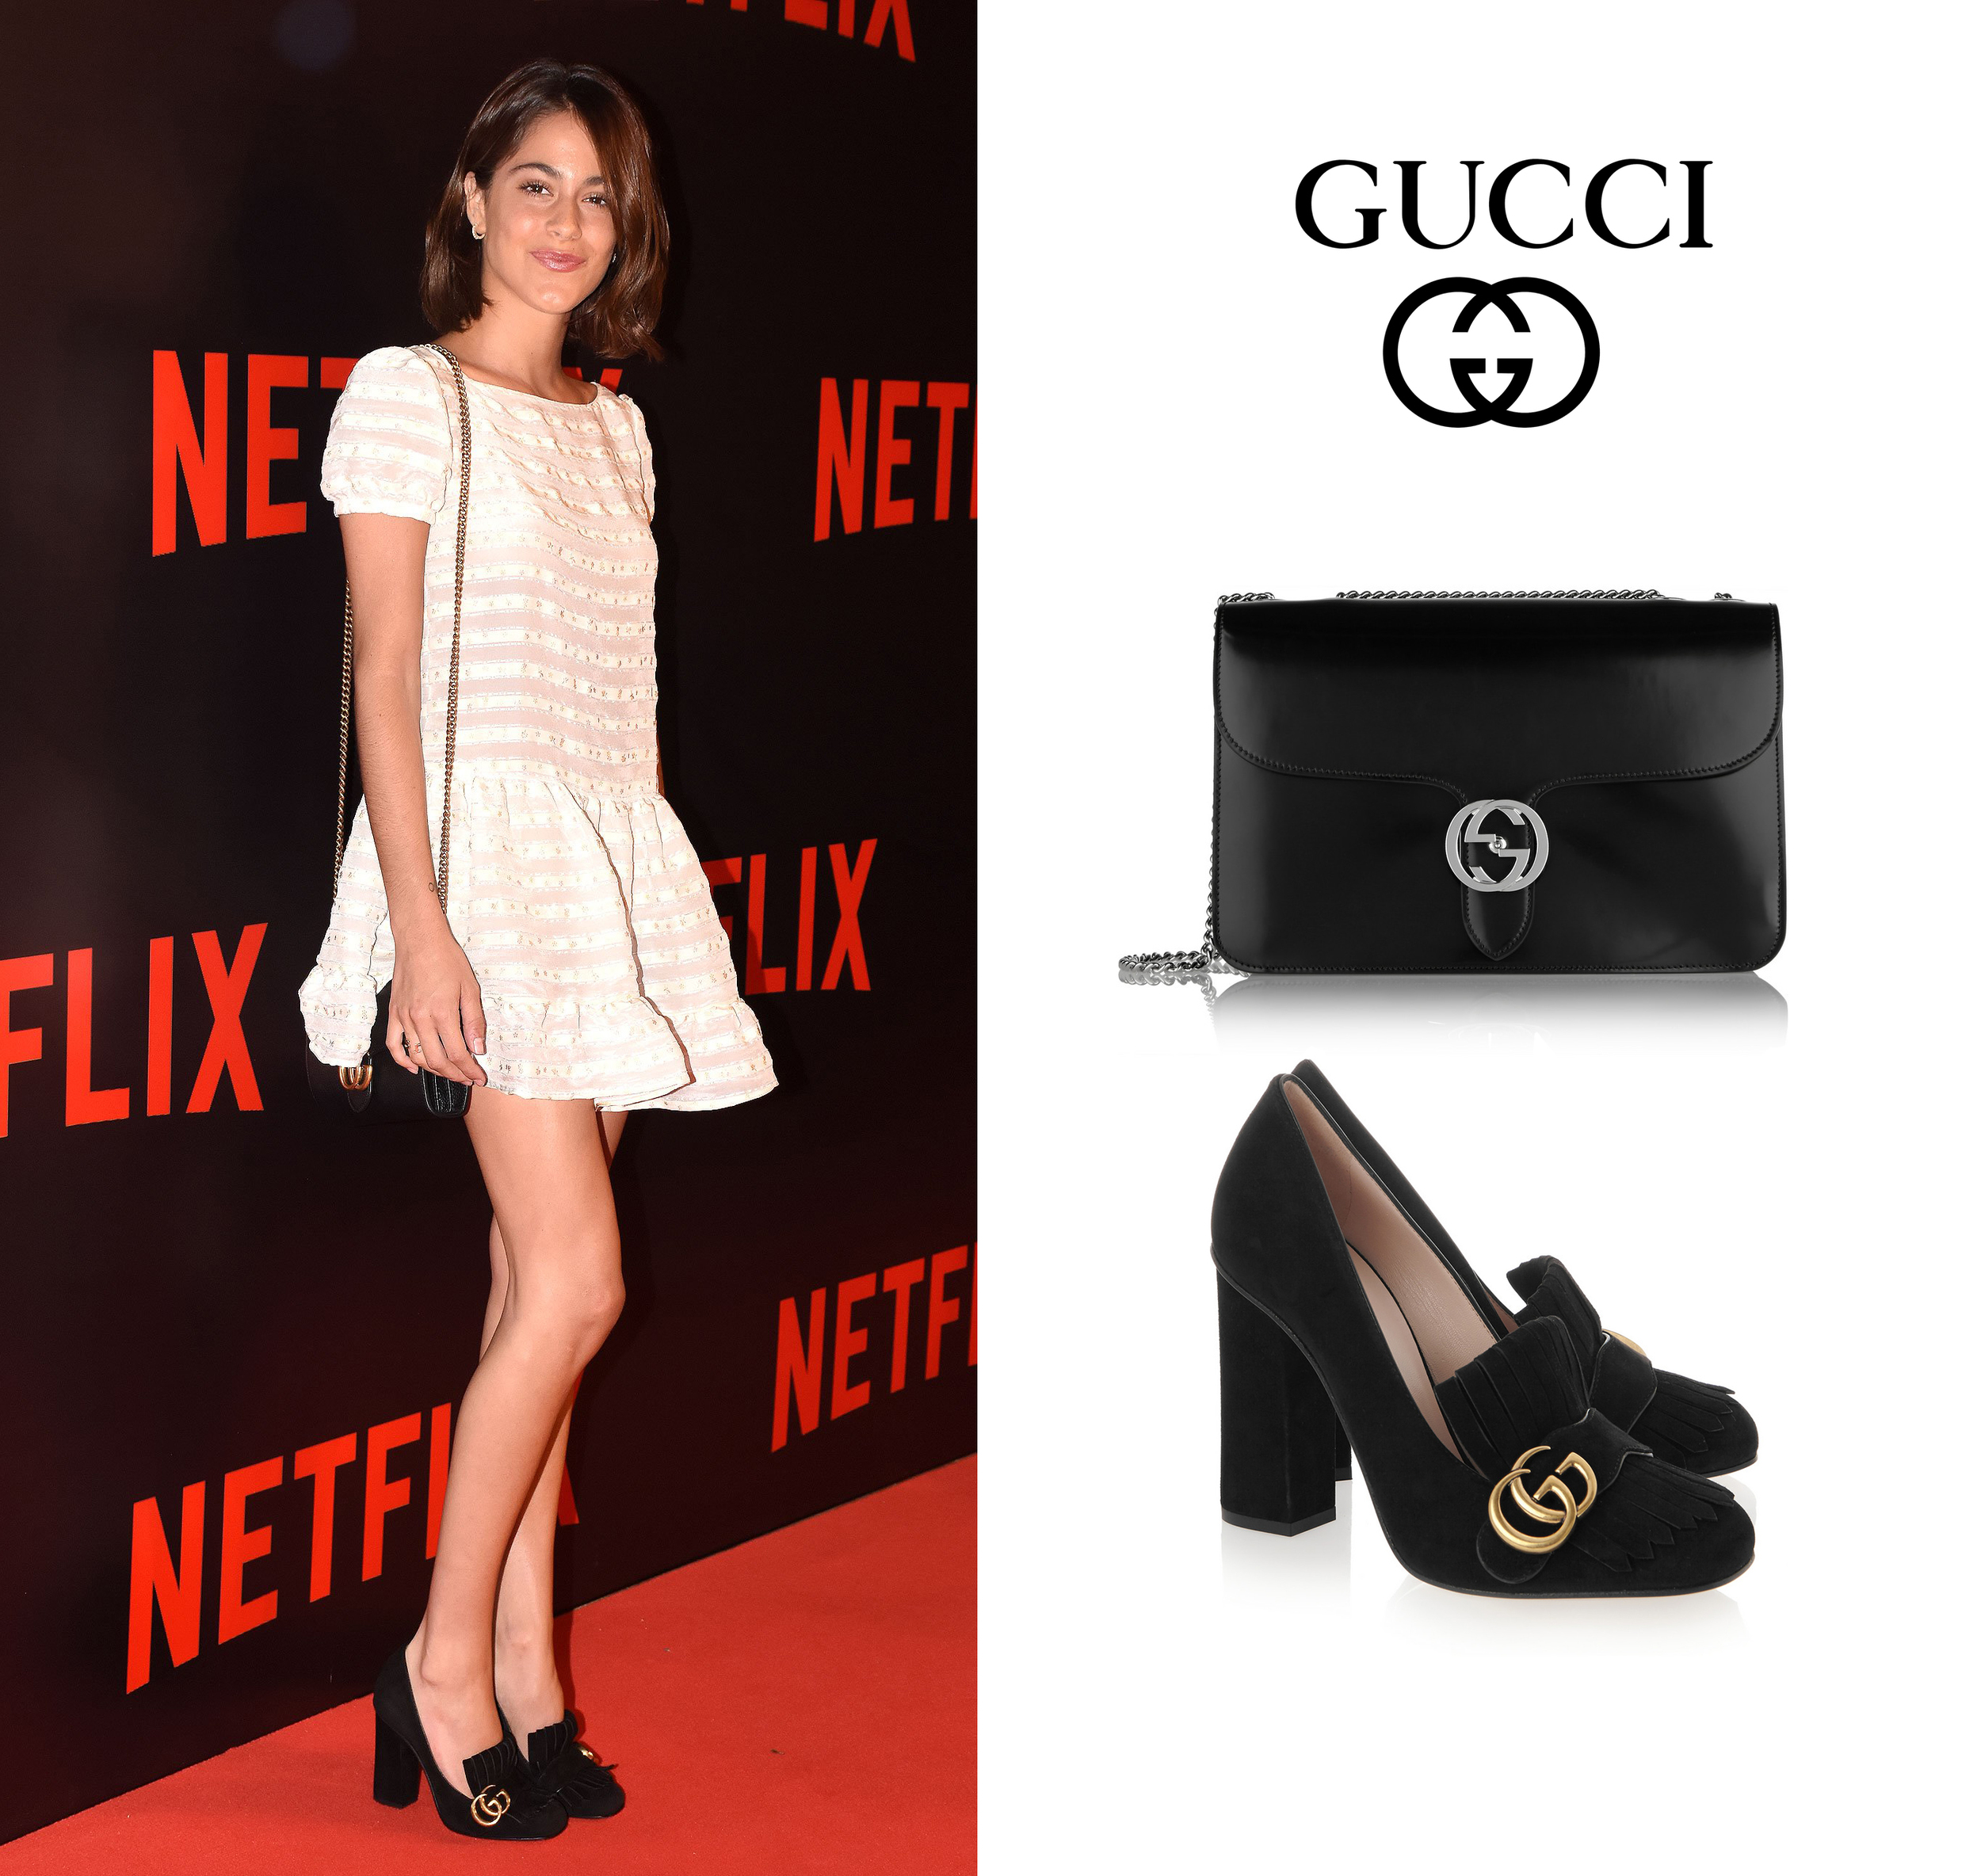 Martina-Stoessel-Netflix-Buenos-Aires-Four-Seasons-Red-Valentino-Dress-Gucci-Heels-Shoulder-Bag.jpg